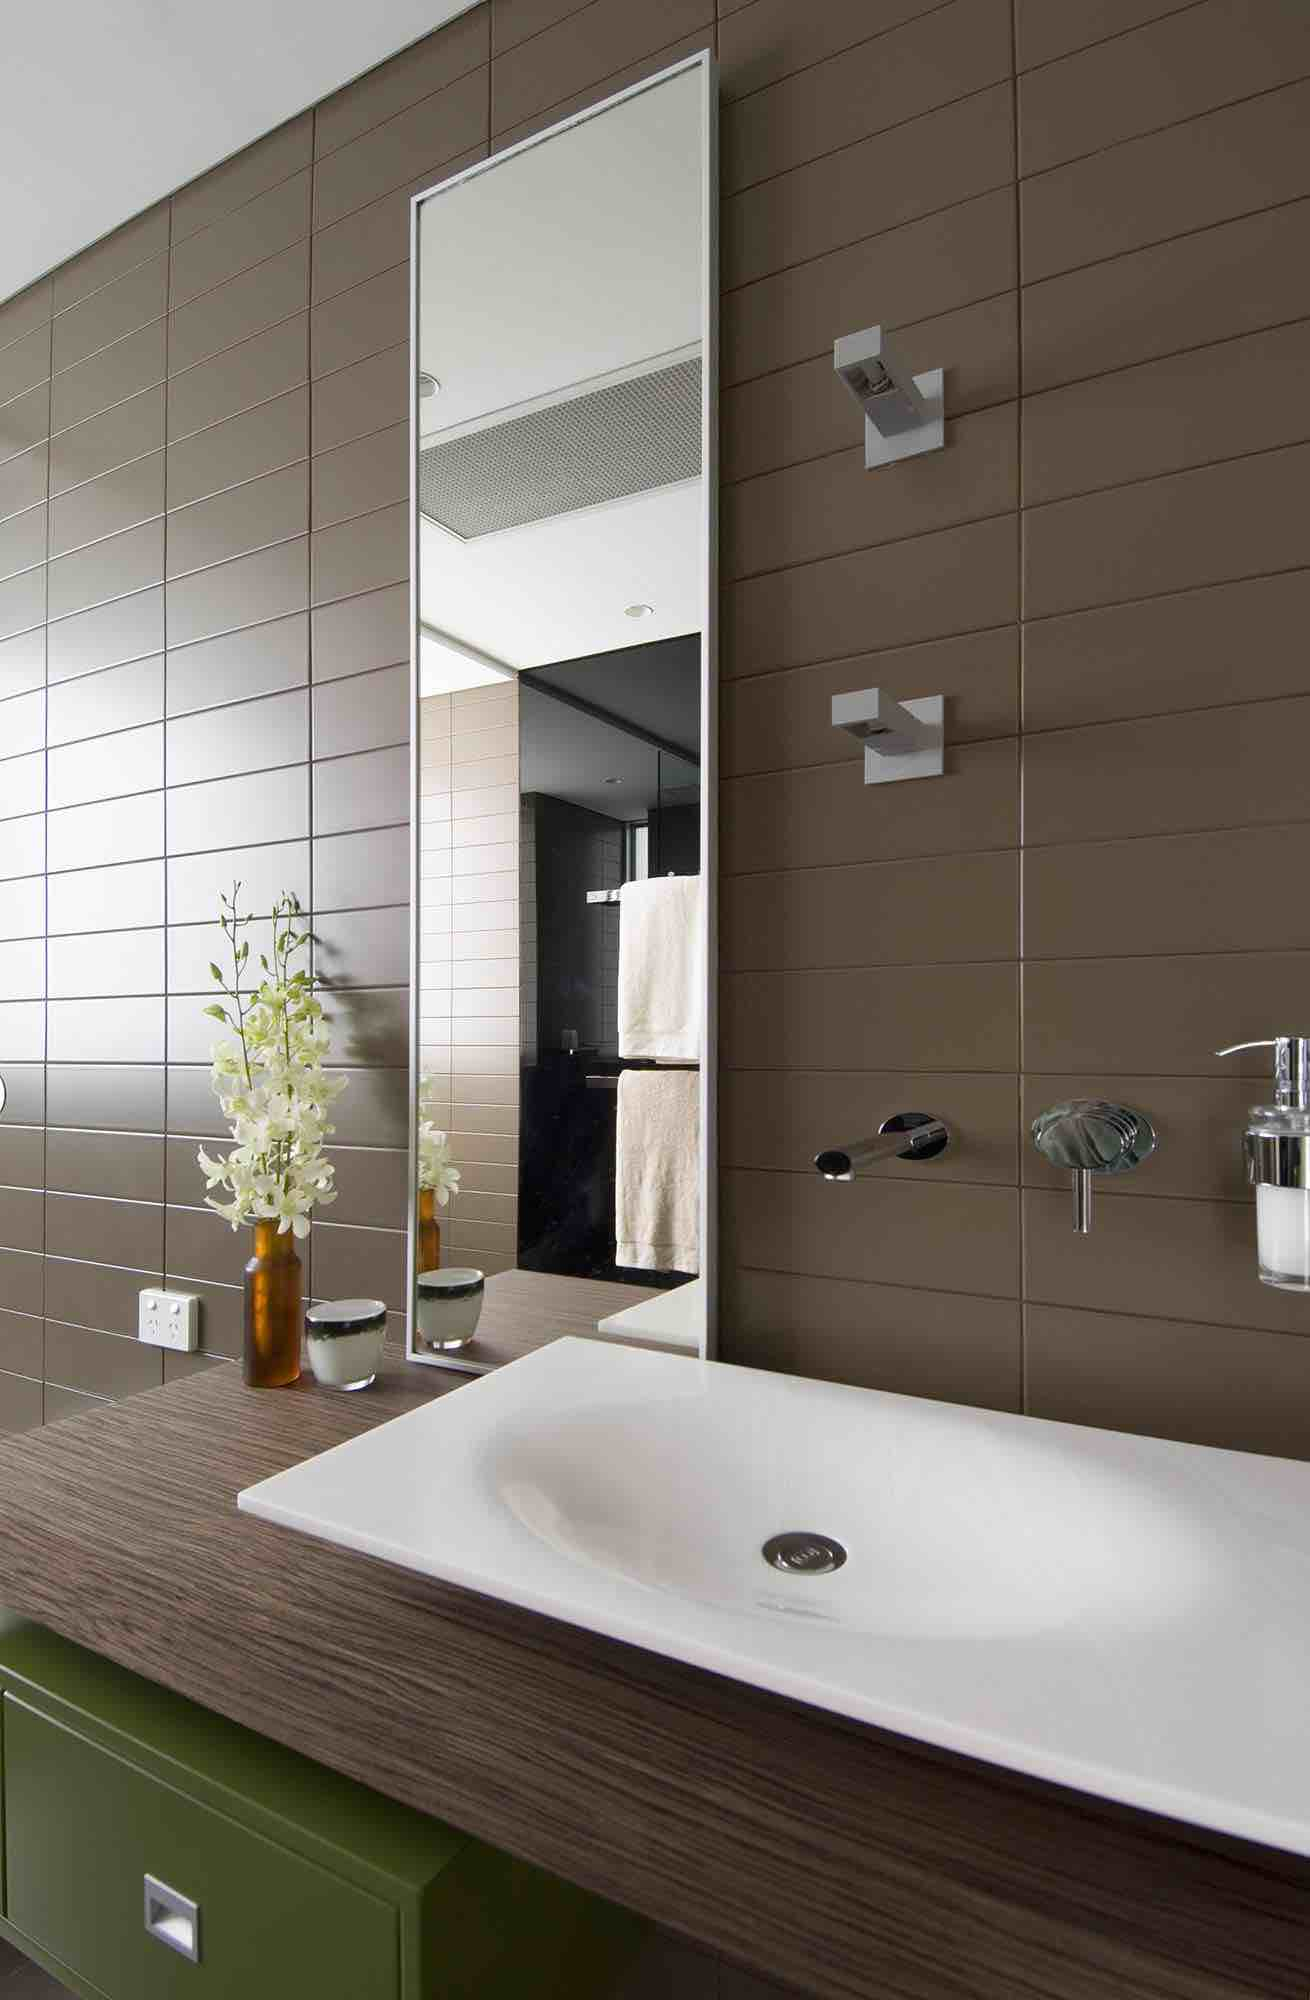 minosa-design-modern-bathroom-floating-vanity-portlans-st-bathroom-puddle-corian-basin-gessi-ovale-dover-heights-02